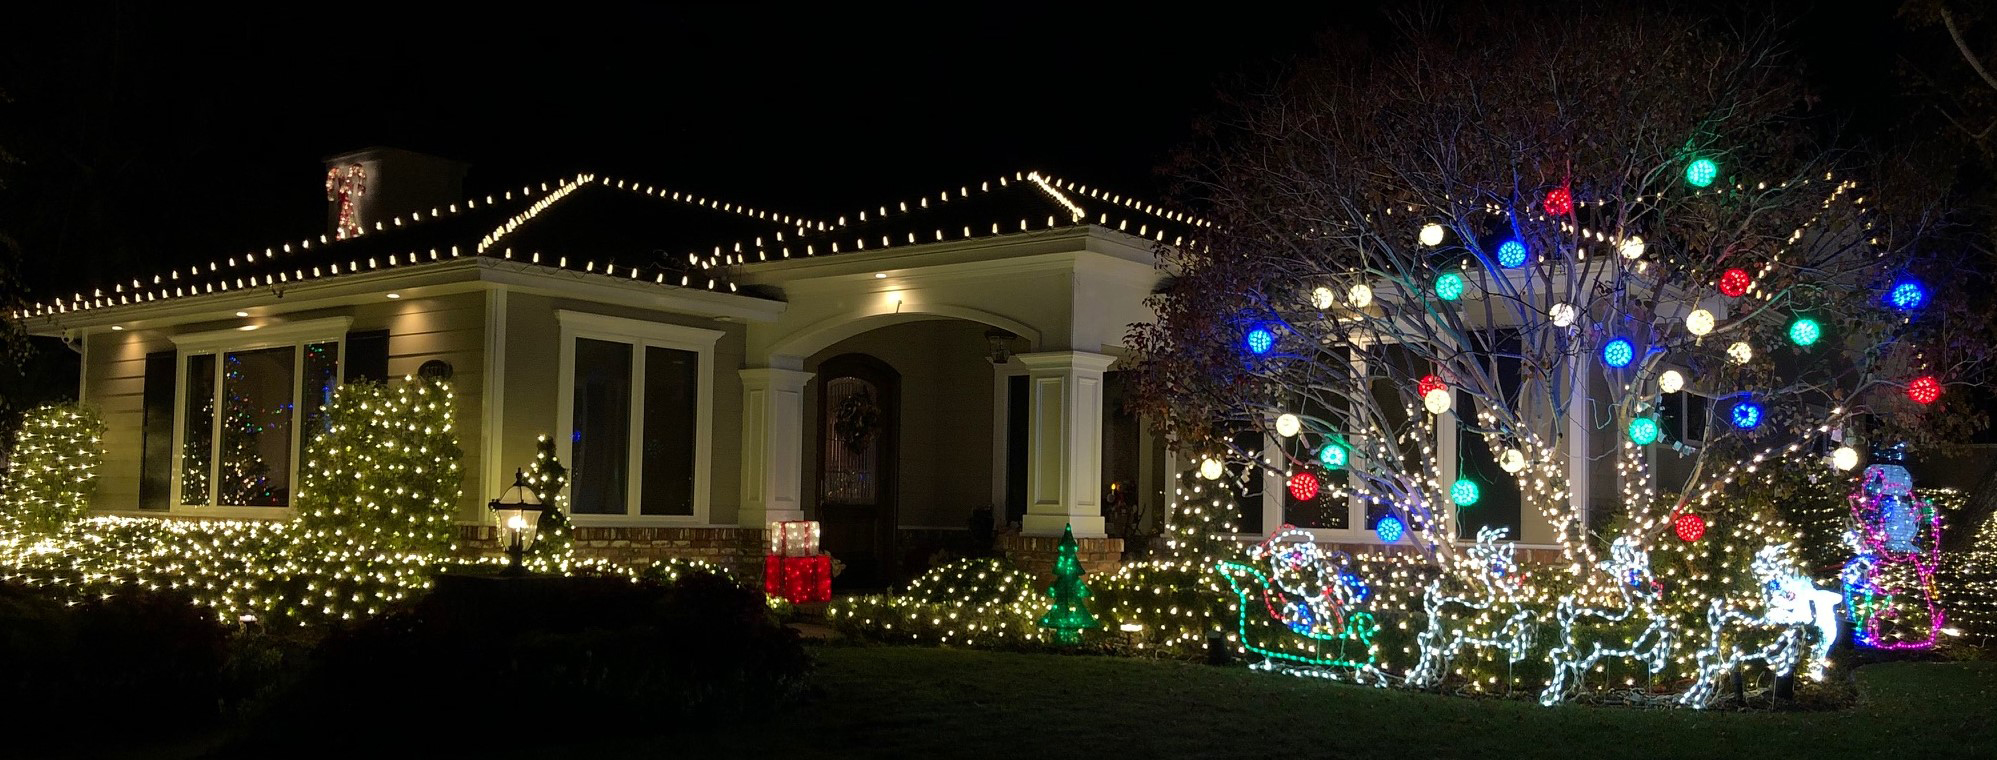 2018 Rossmoor Christmas Lights